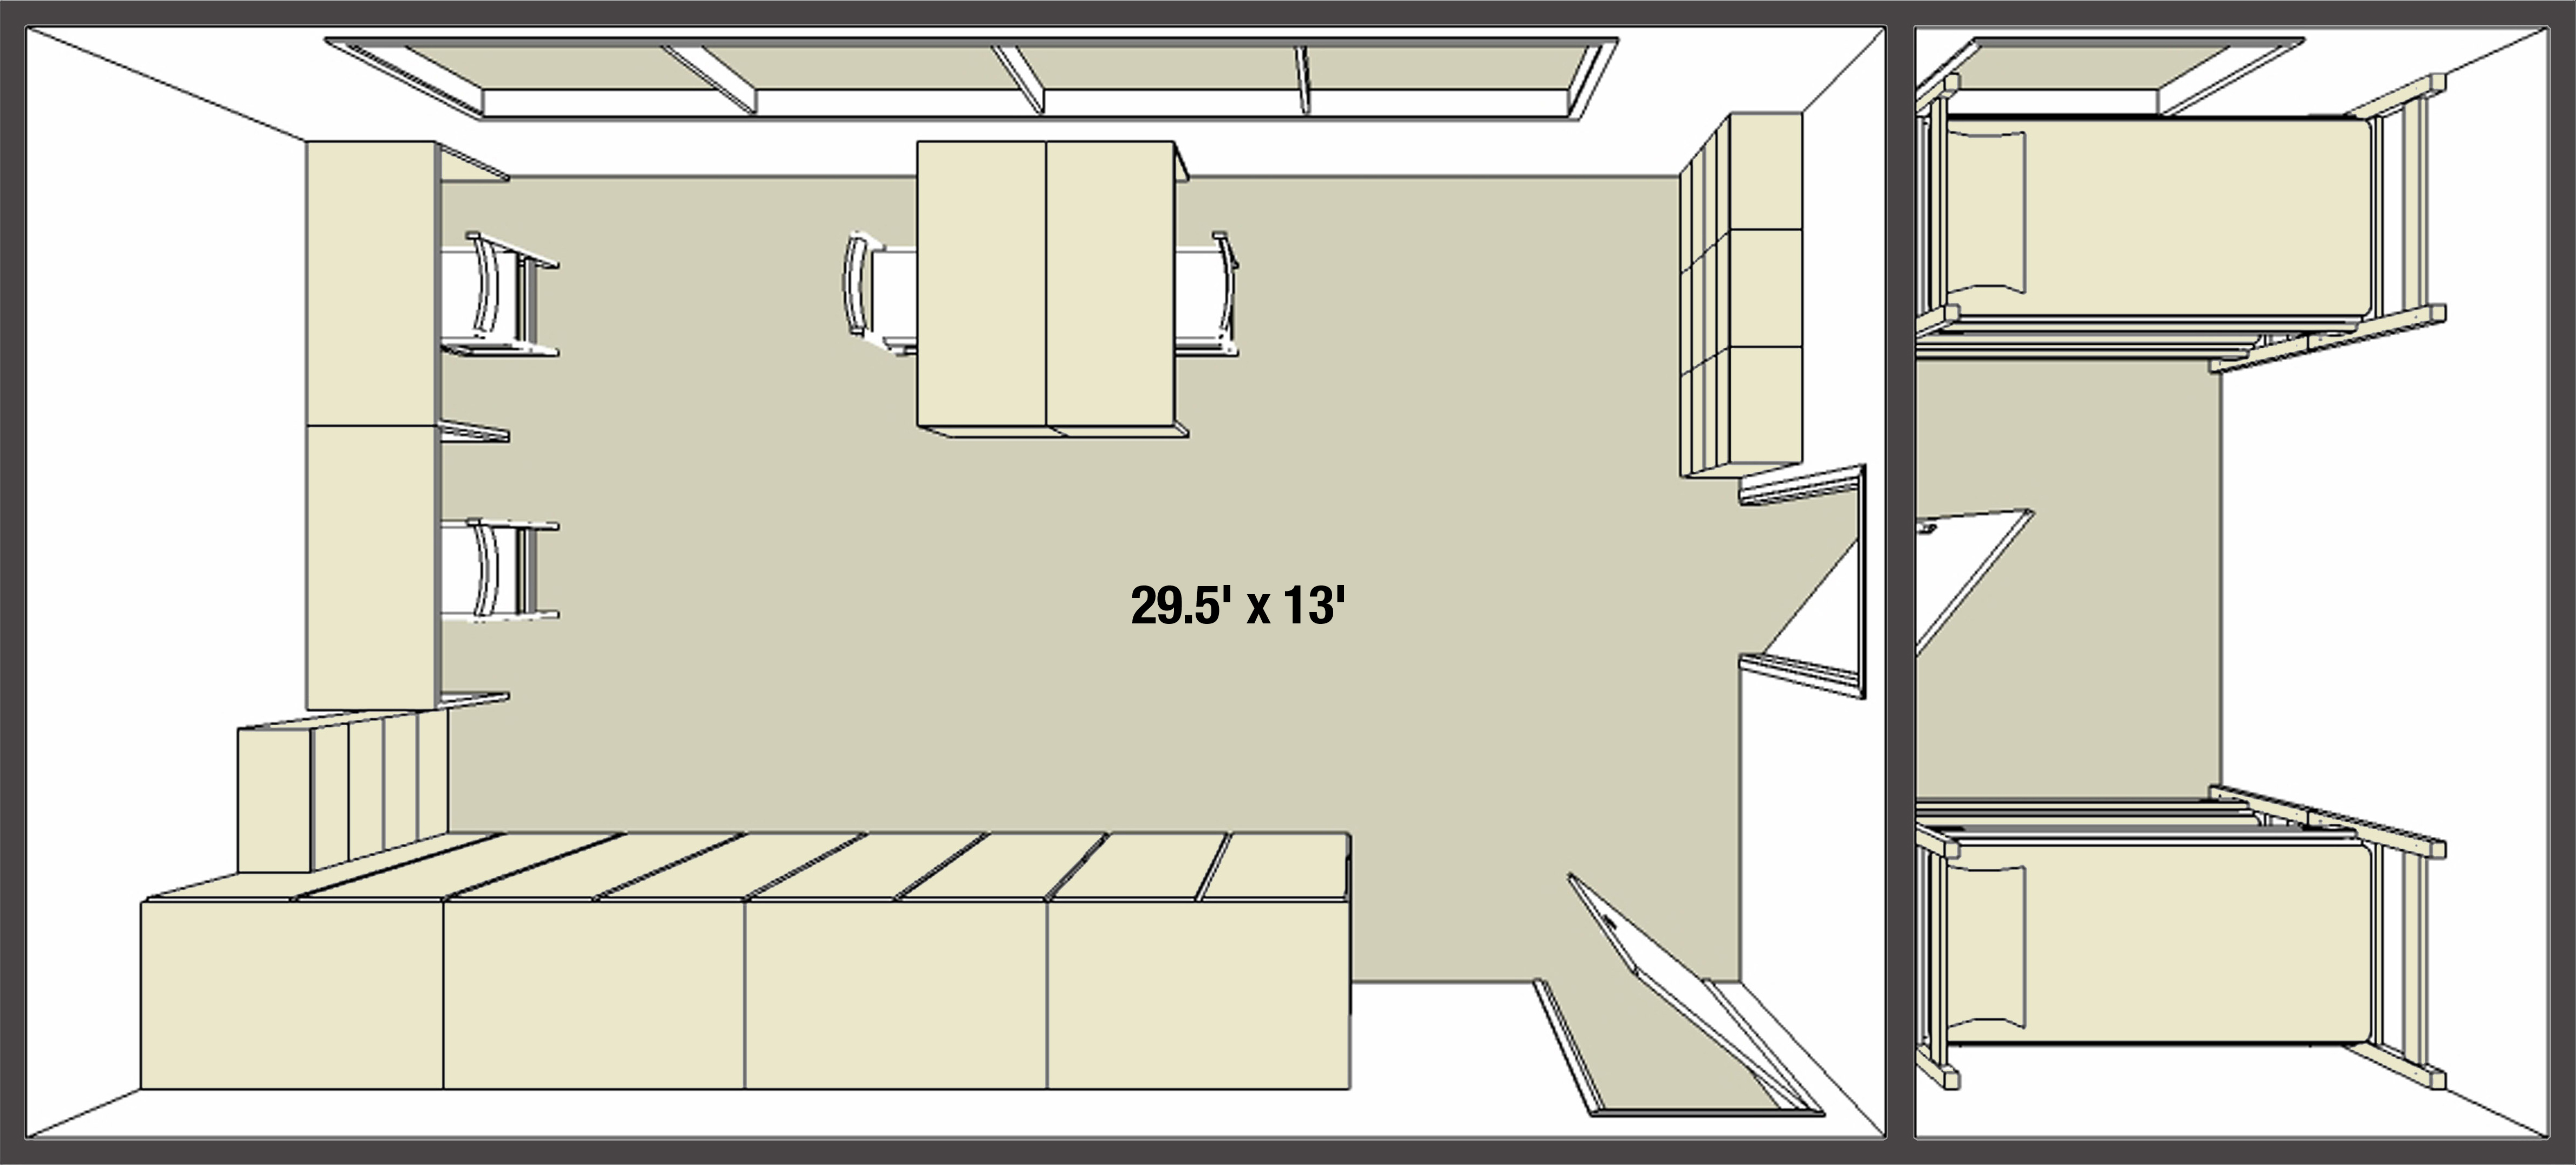 Double dorm room layouts - You Can Download Either Page For A Closer Look But Keep In Mind Especially For A Quad This Is Just A Sample Of Course Every Four Person Room